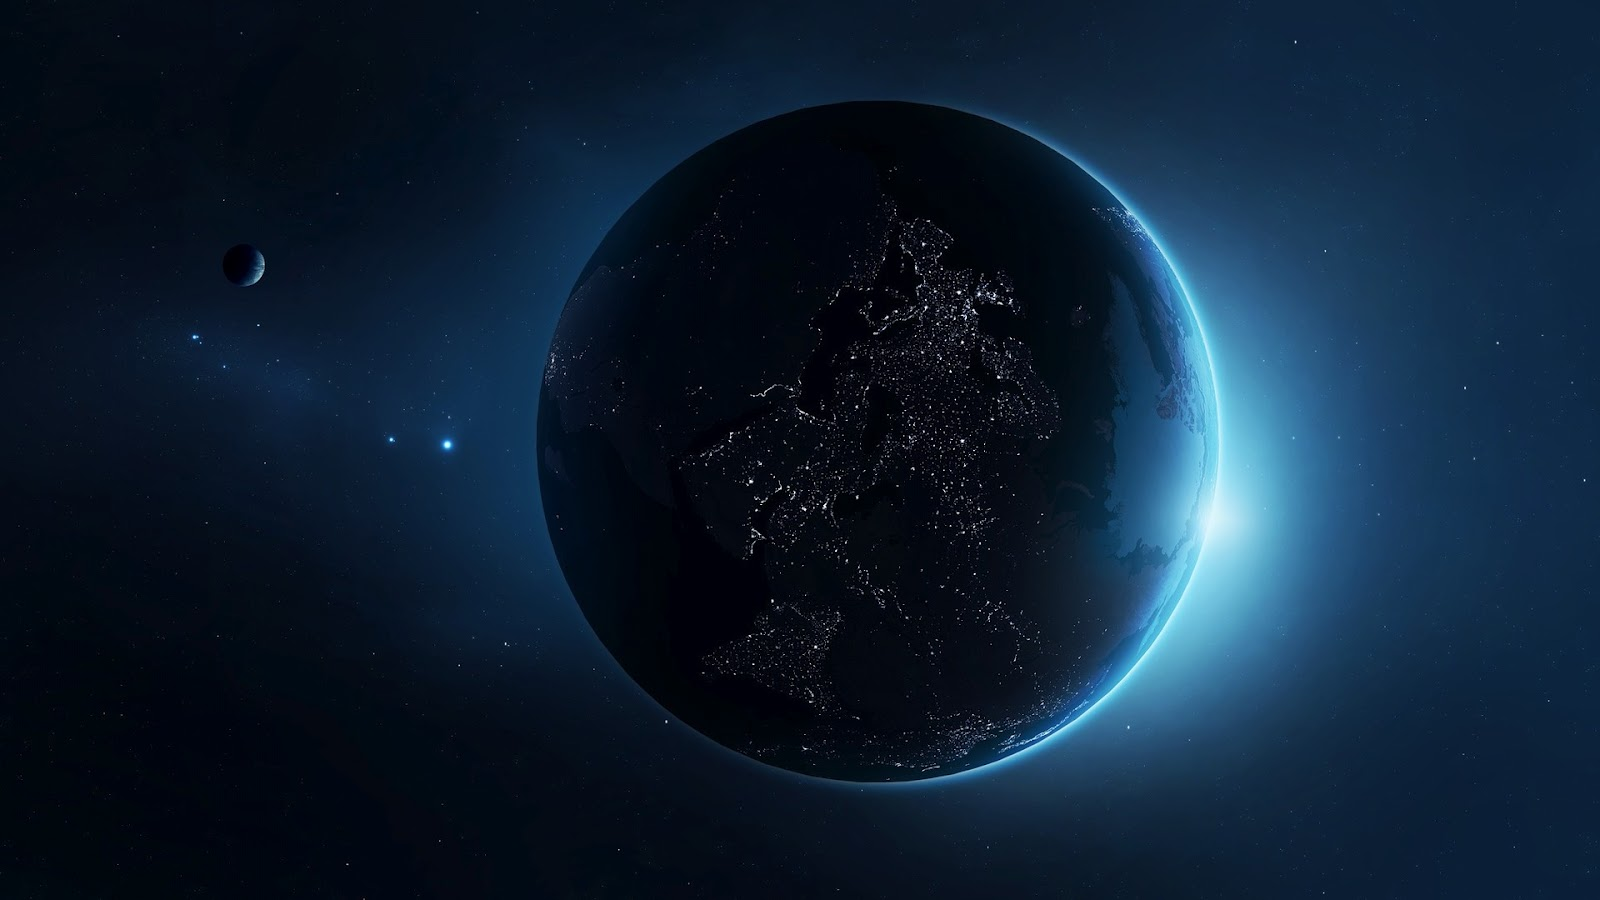 Earth at Night HD Wallpaper Home of Wallpapers download hd 1600x900